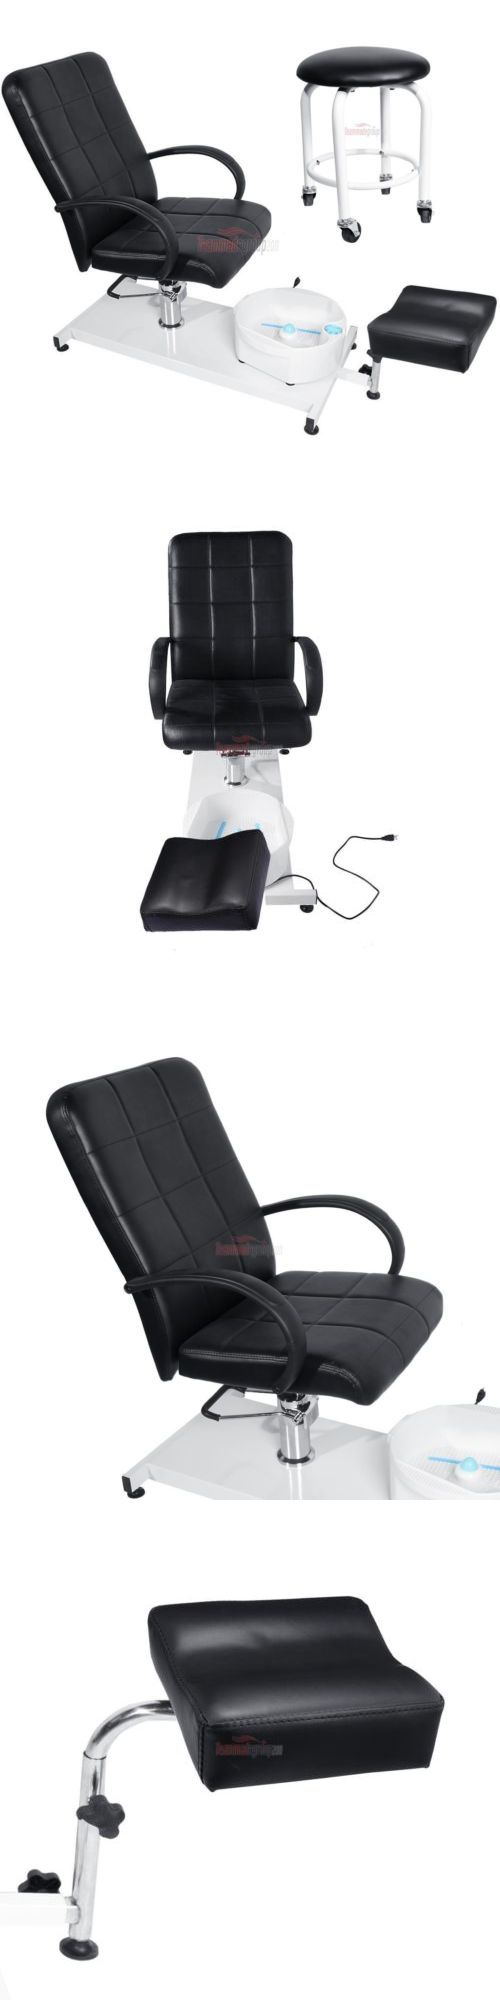 Spas Baths and Supplies: Black Pedicure Station Hydraulic Chair And Massage Foot Spa Beauty Salon Equipment BUY IT NOW ONLY: $284.9